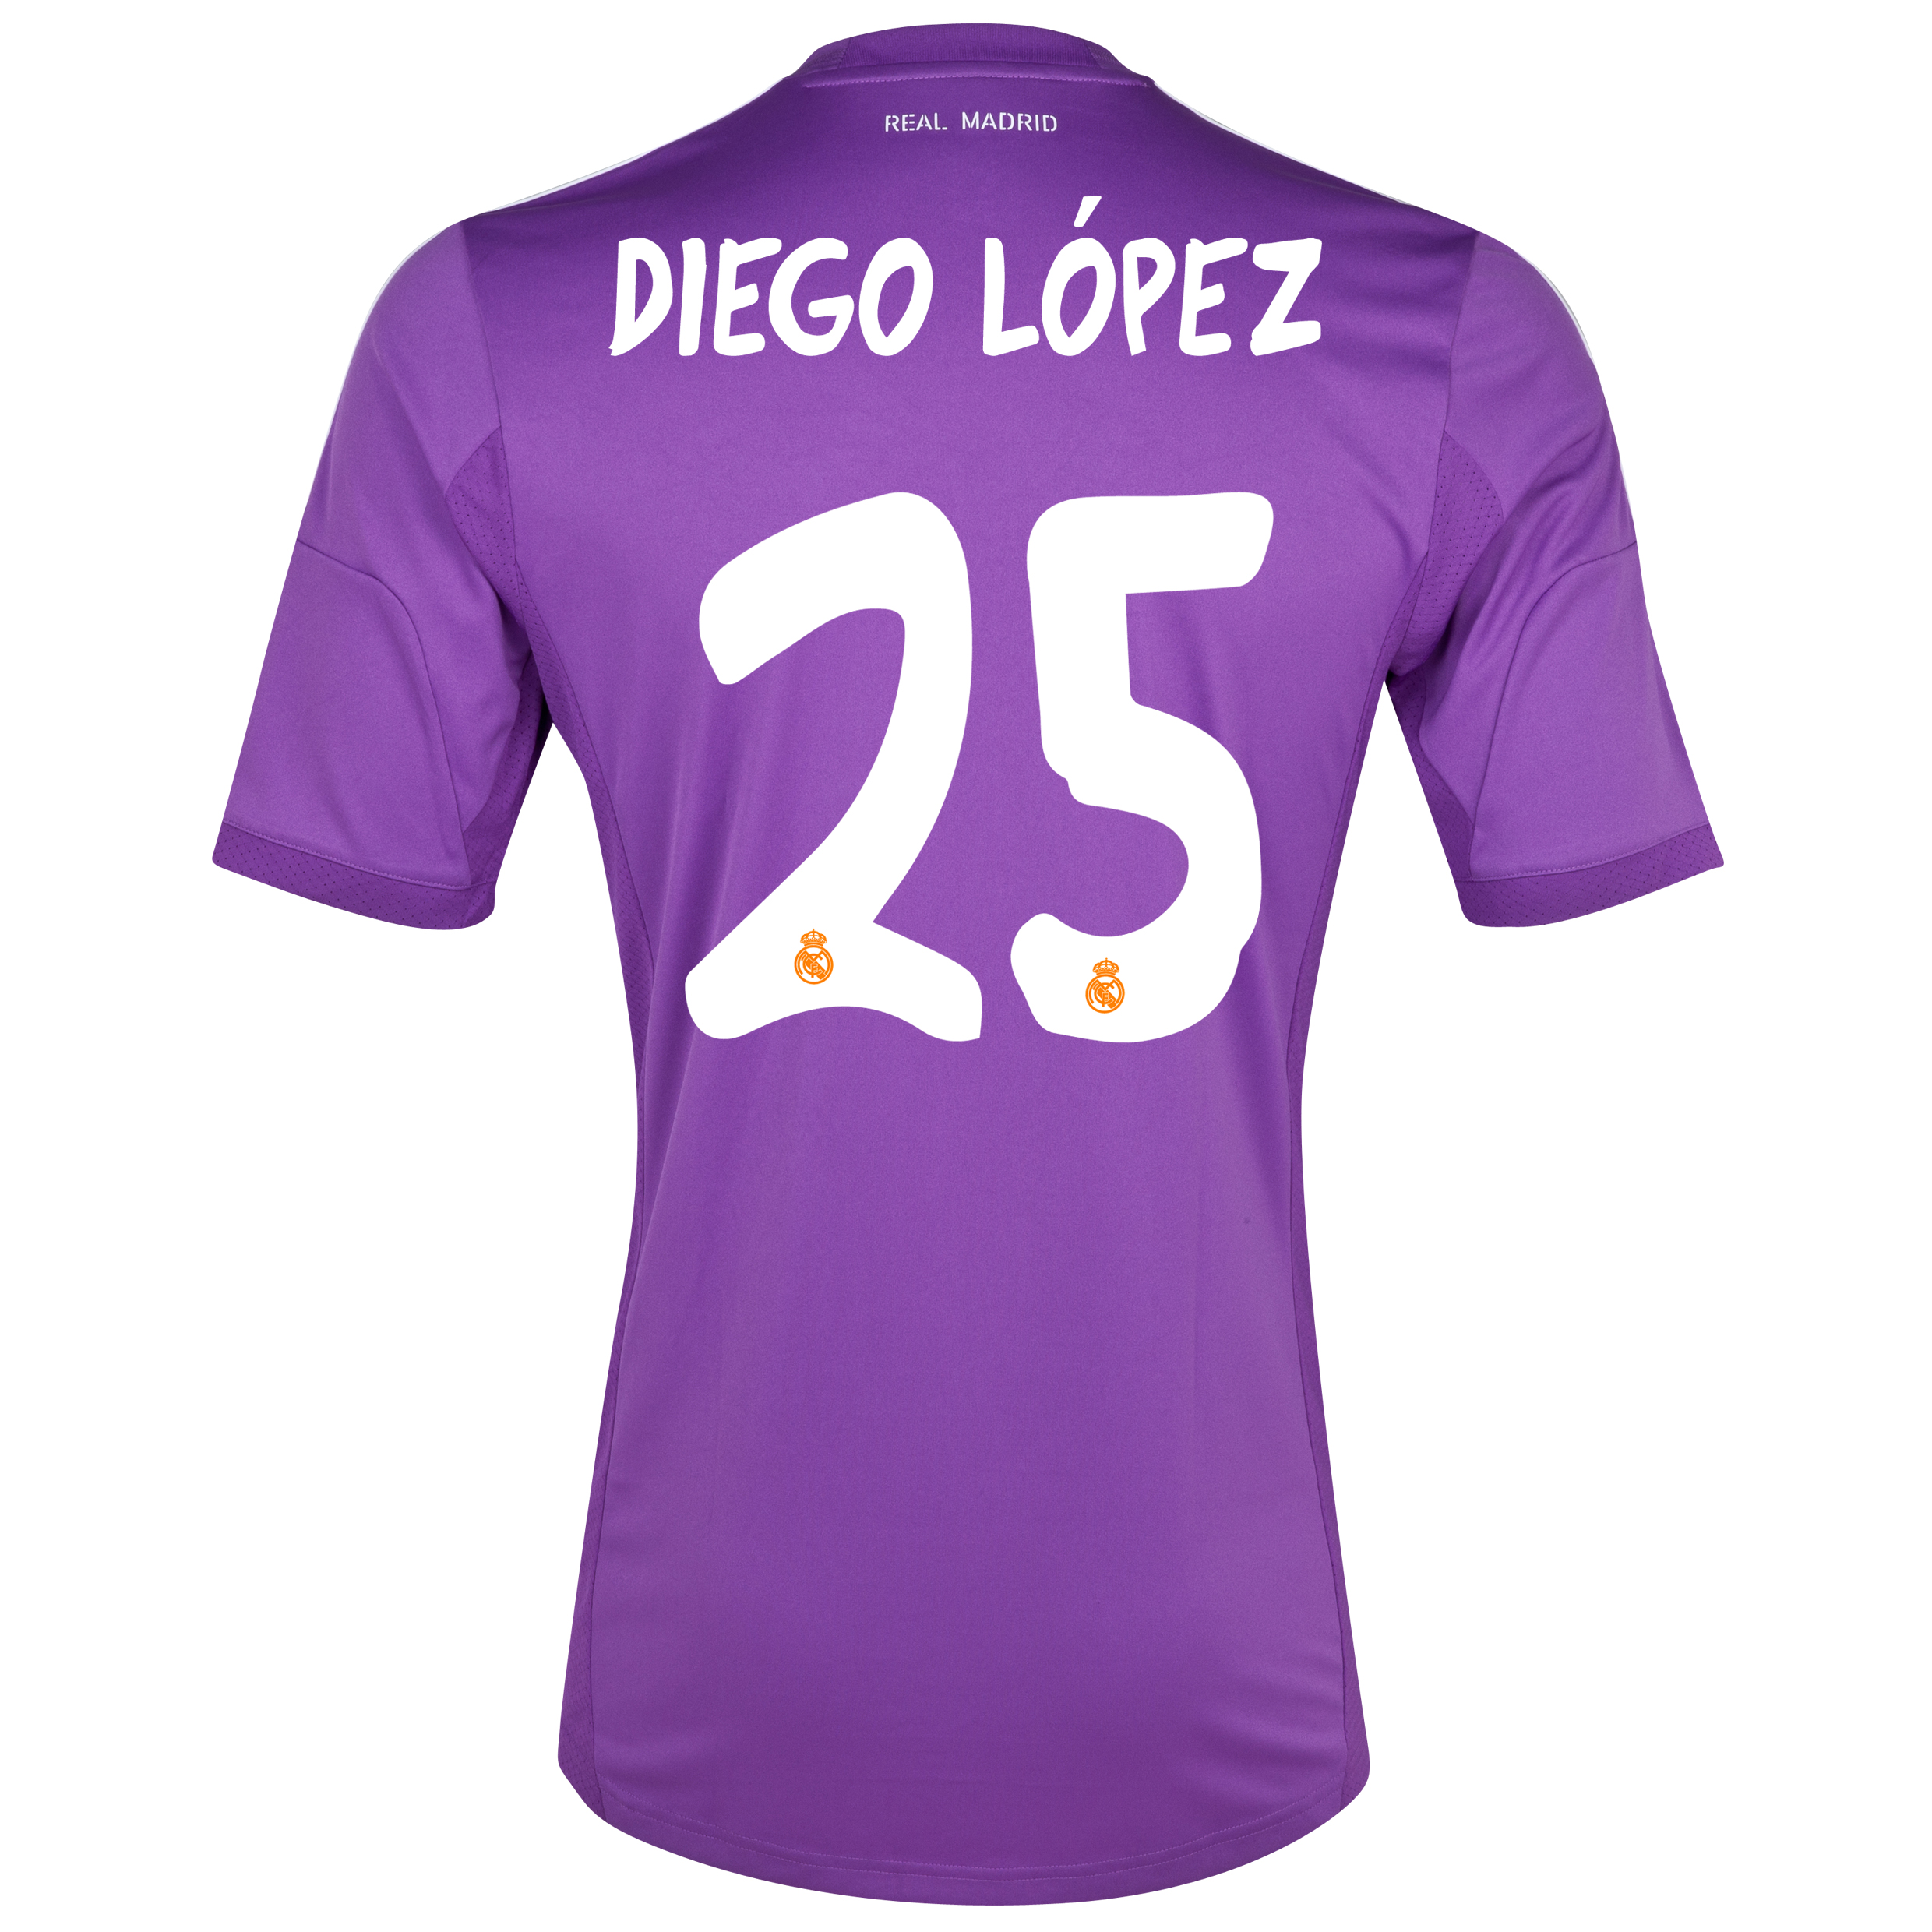 Real Madrid Home Goalkeeper Shirt 2013/14 kids with Diego Lopez 25 printing